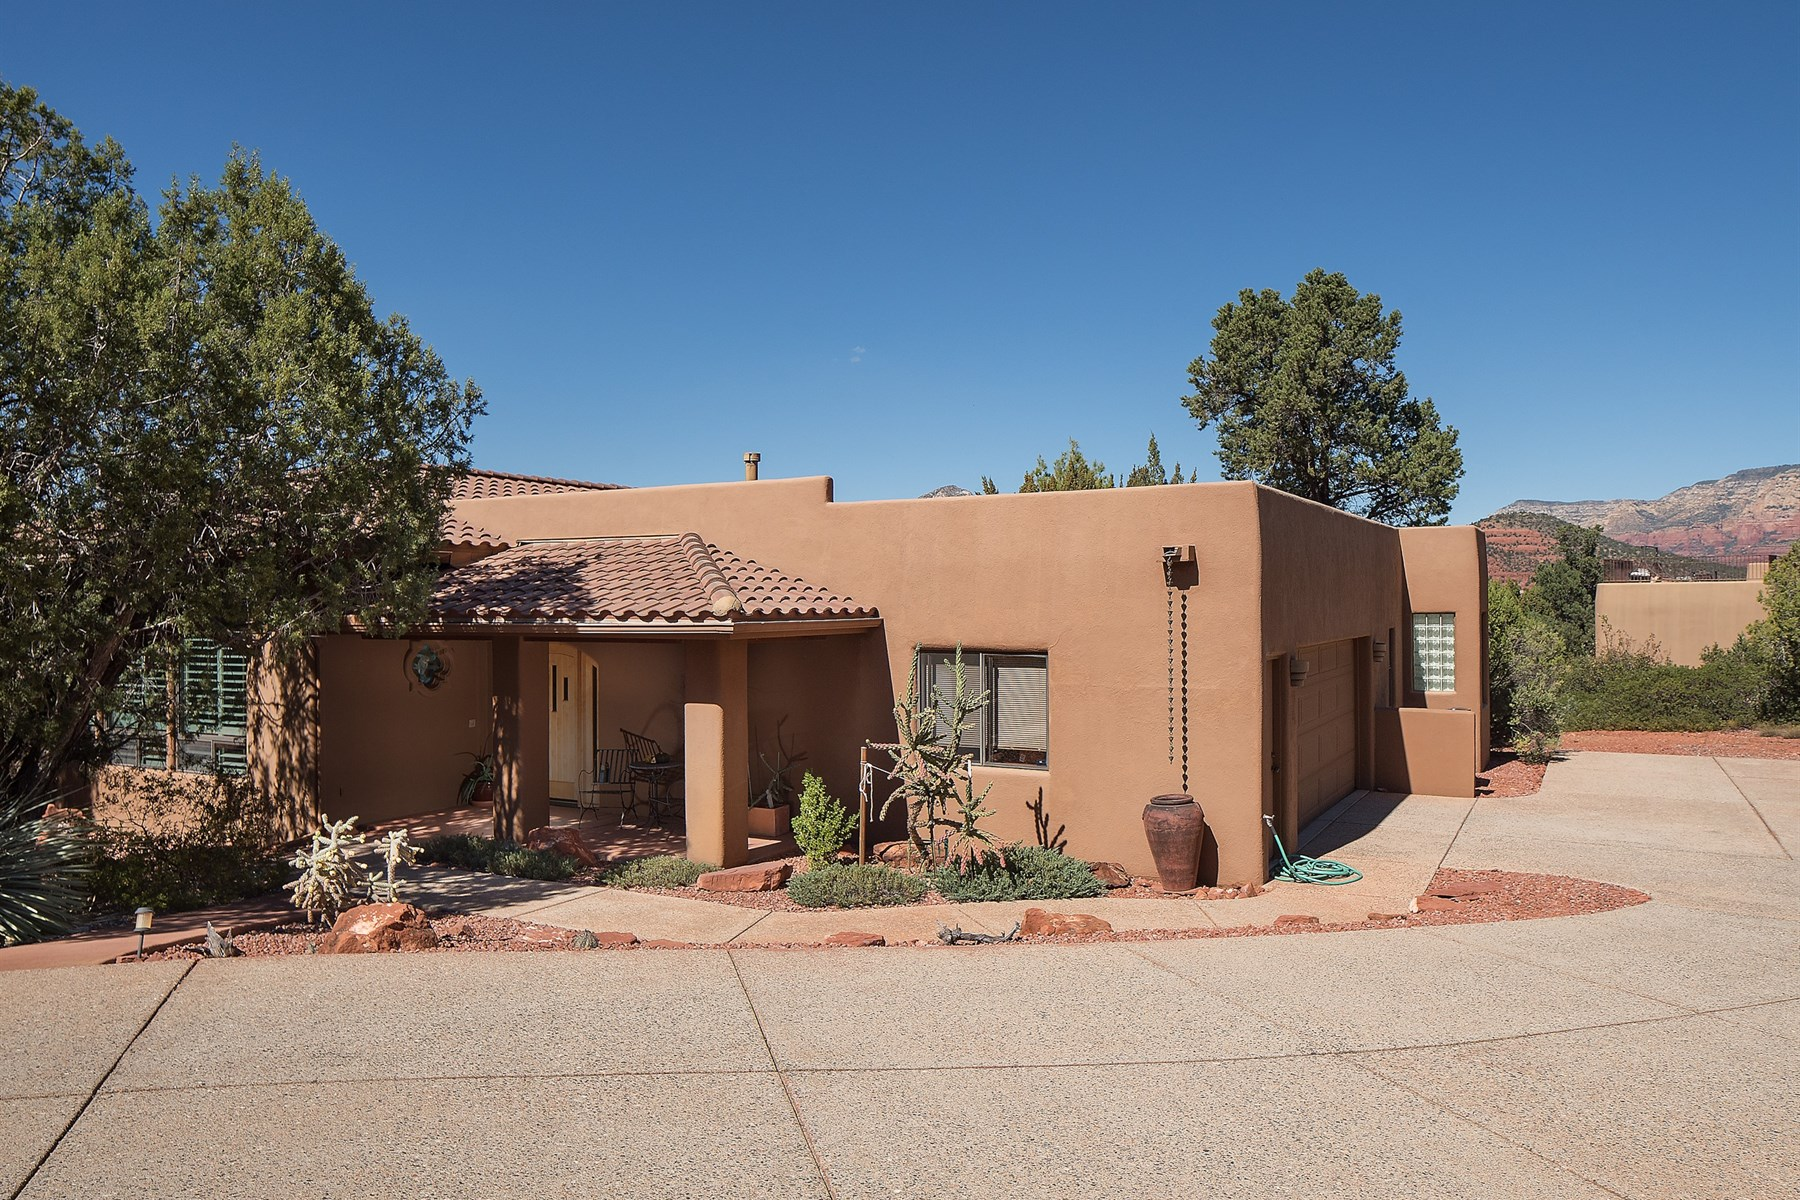 Single Family Home for Sale at Lovely home secluded in upscale Mystic Hills 88 Chapel Rd #40 Sedona, Arizona, 86336 United States